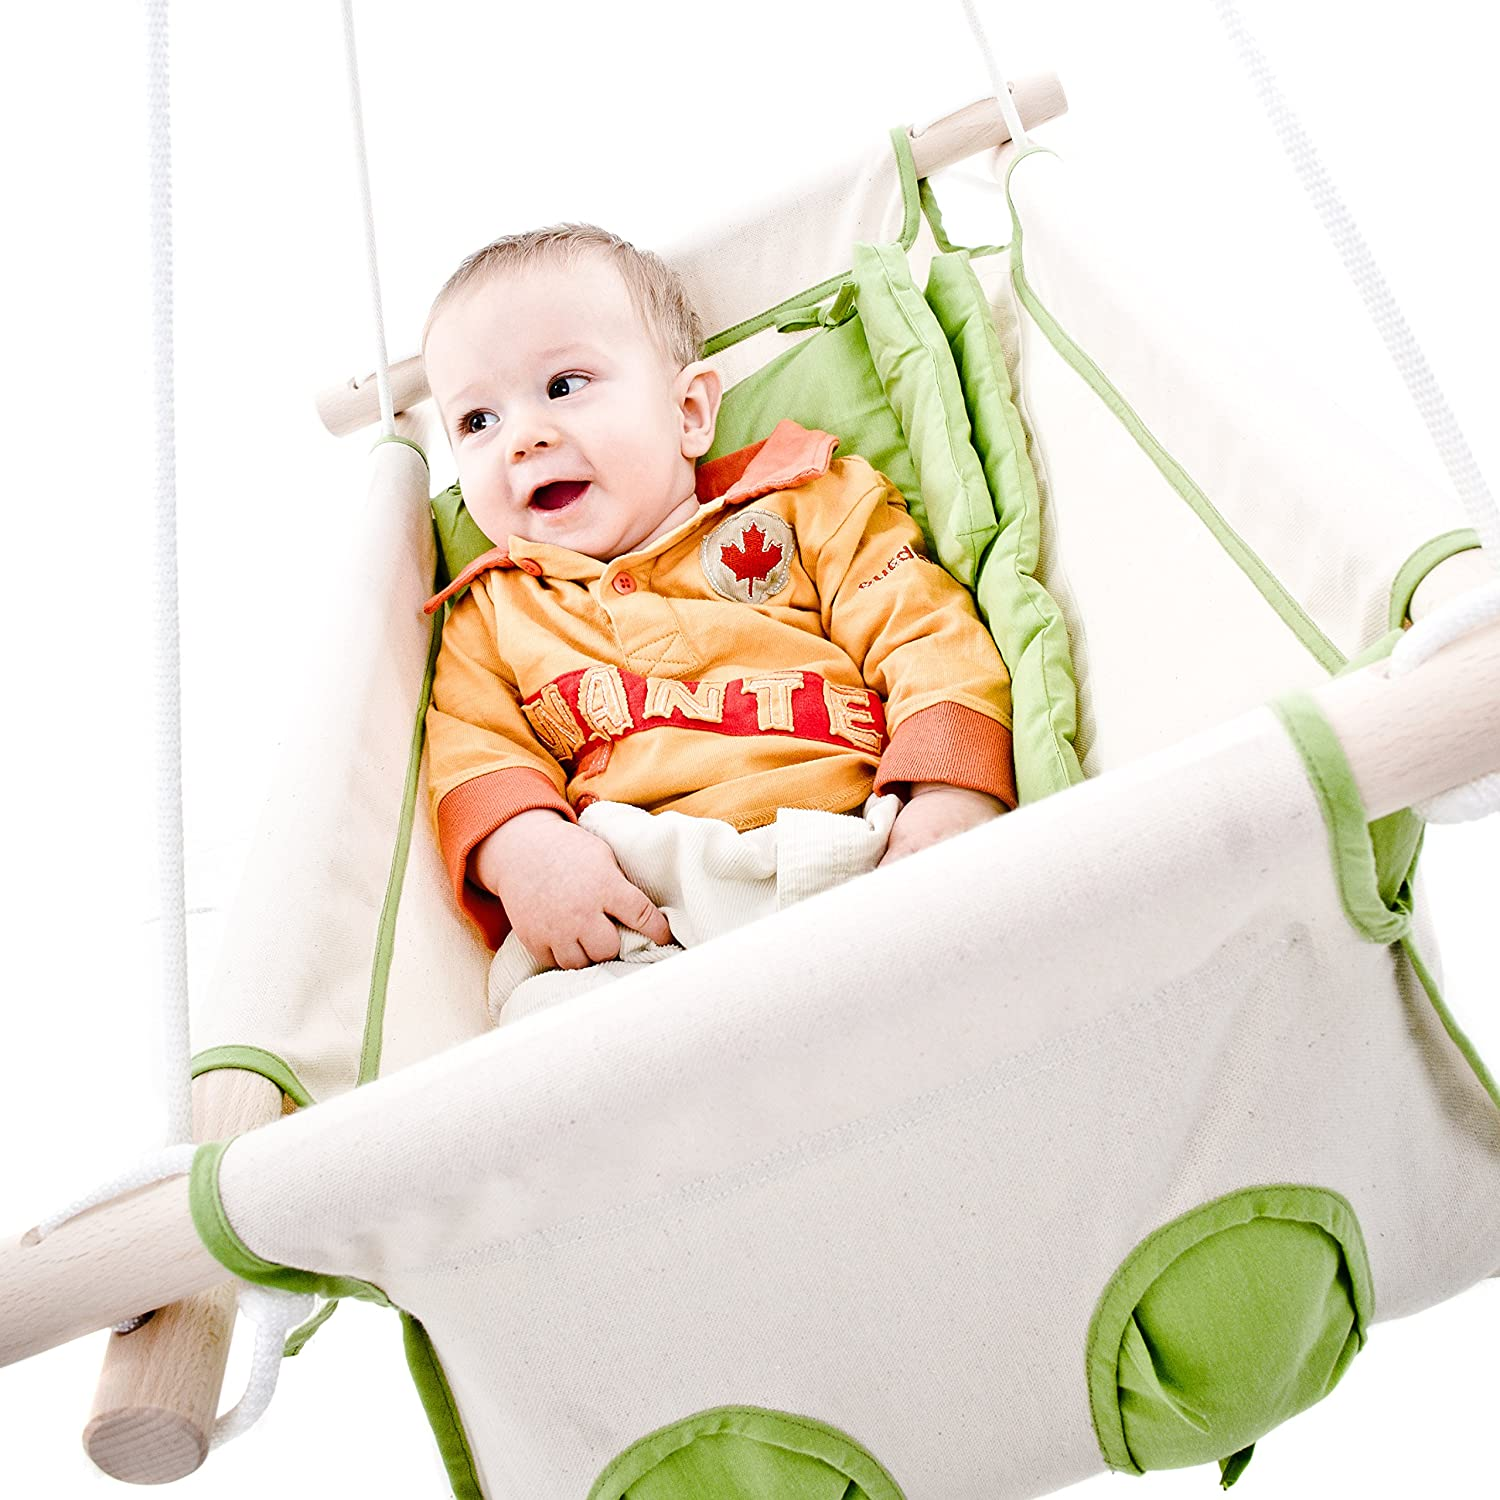 amazon     beto baby swing baby hammock cradle swing with spring and spreader bar  green beige    baby amazon     beto baby swing baby hammock cradle swing with      rh   amazon